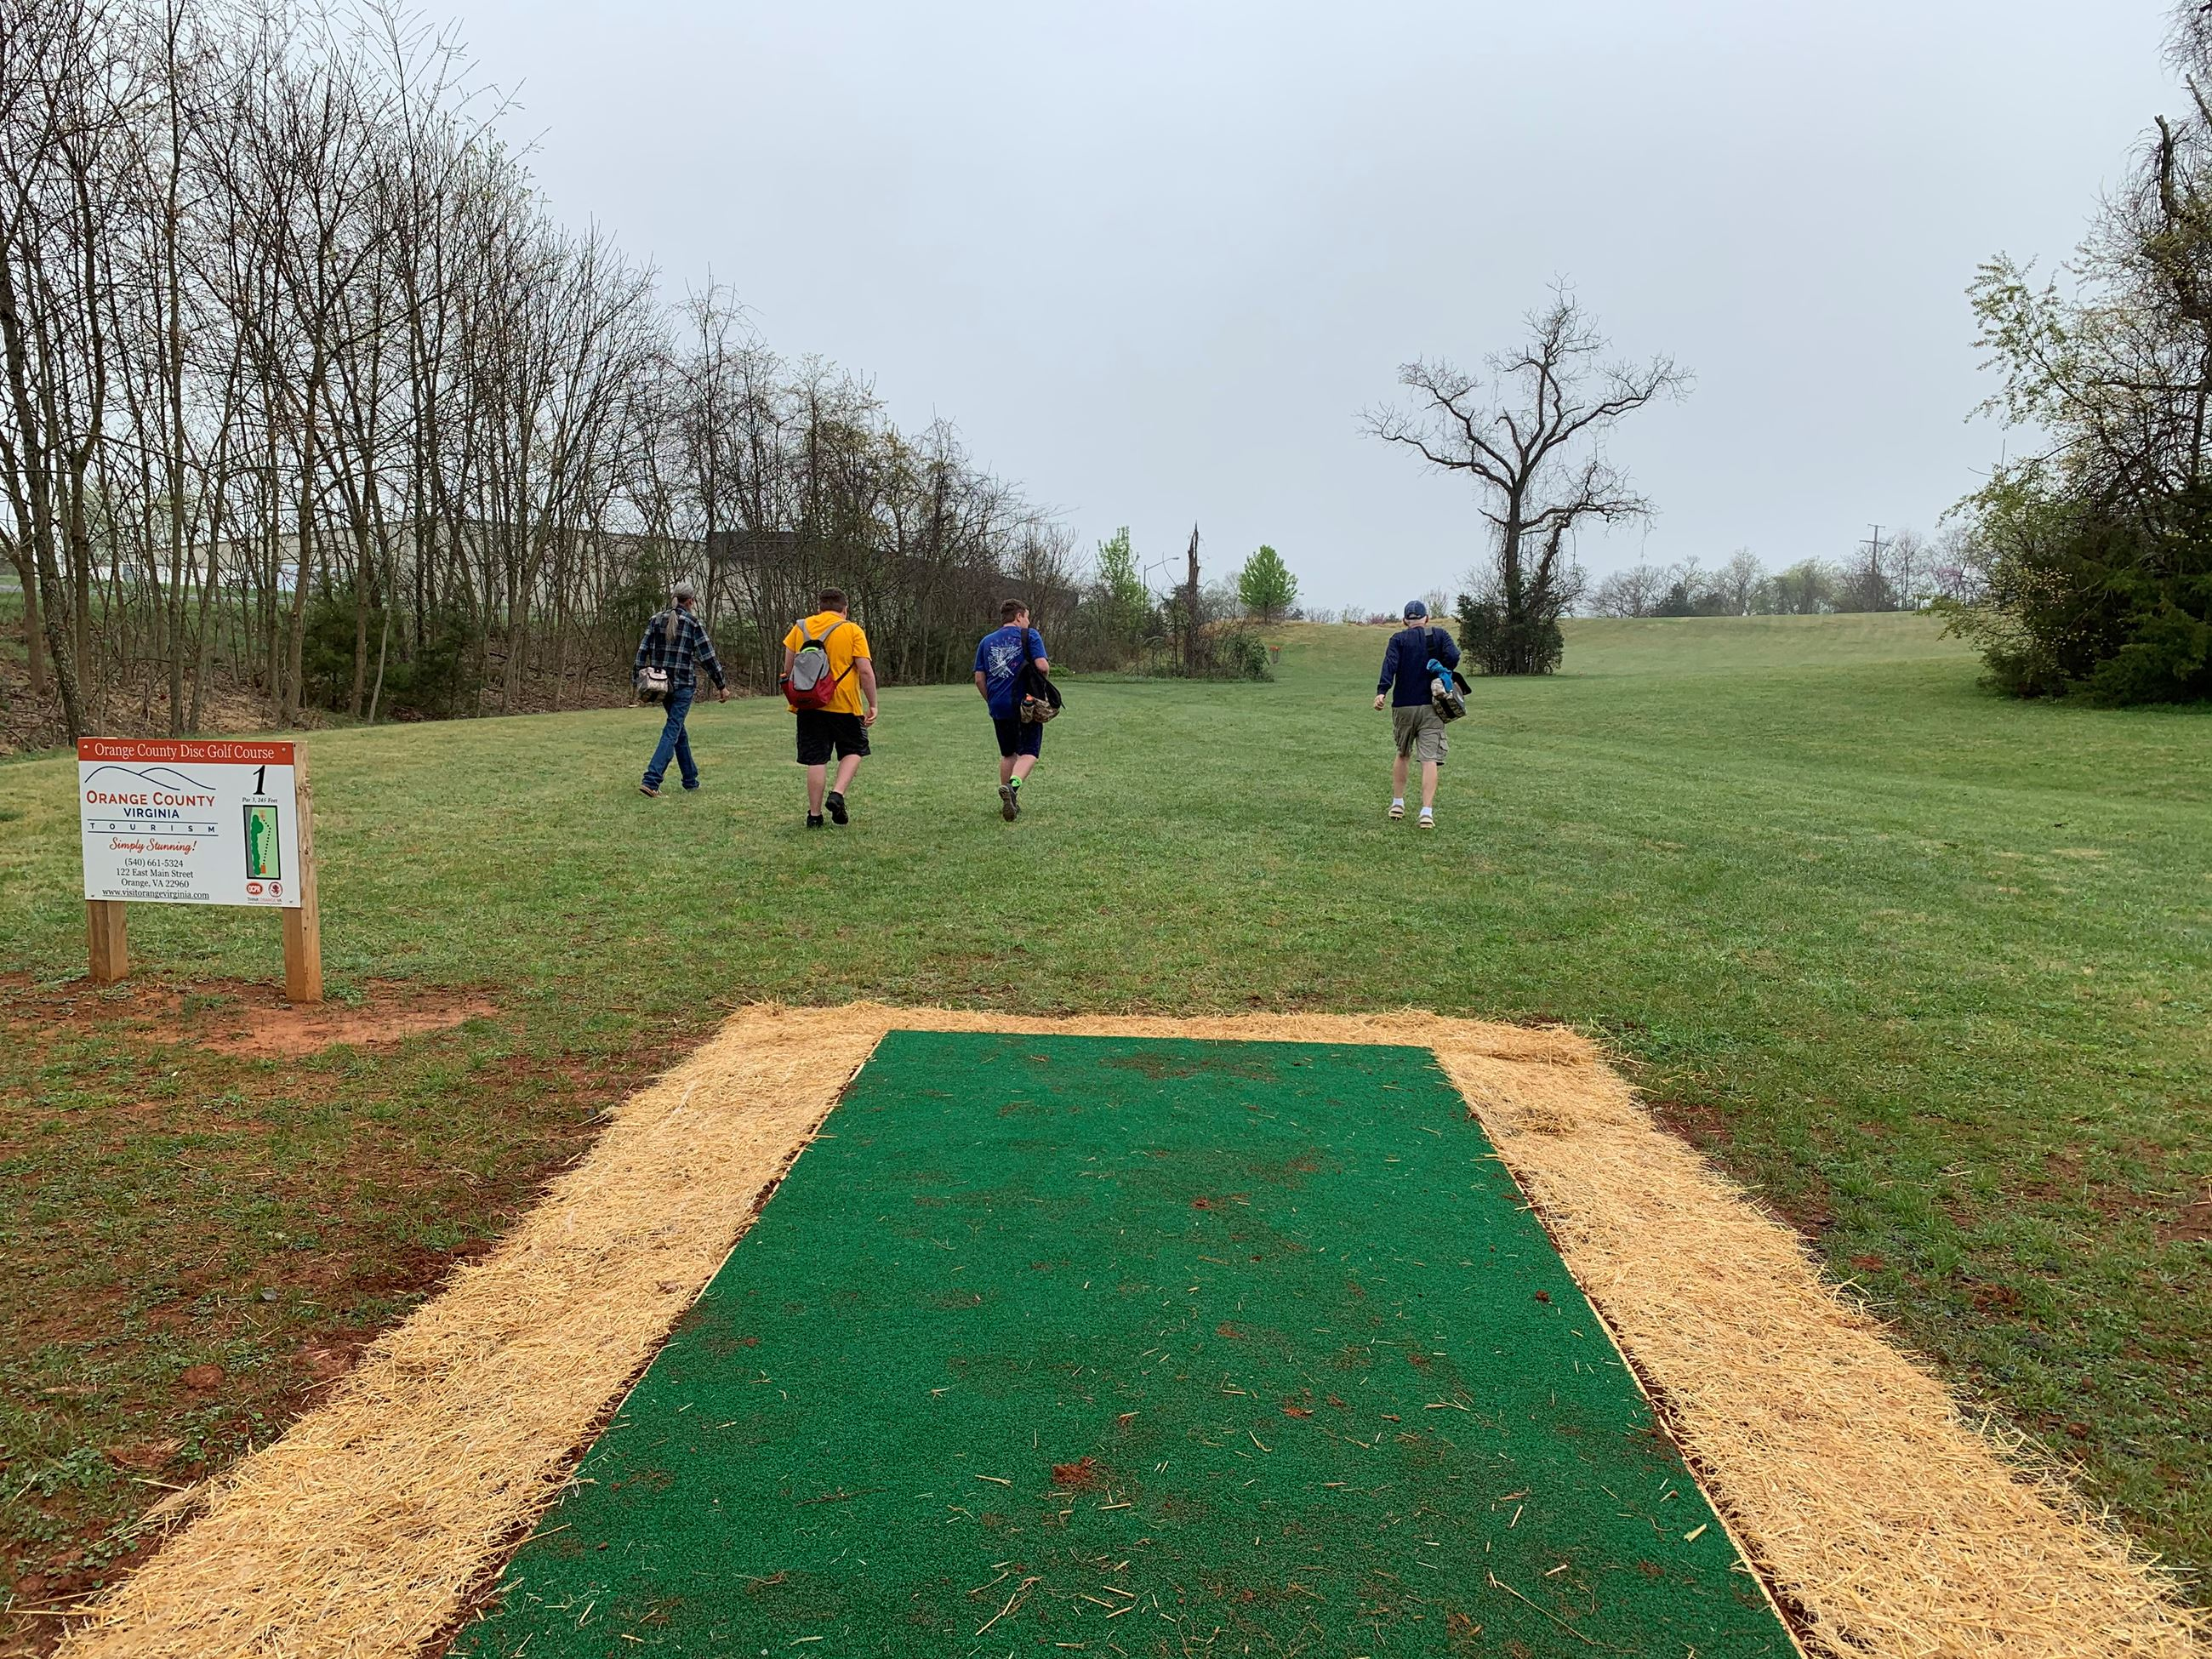 Players walk along hole number 1 at the Orange County Disc Golf Course.